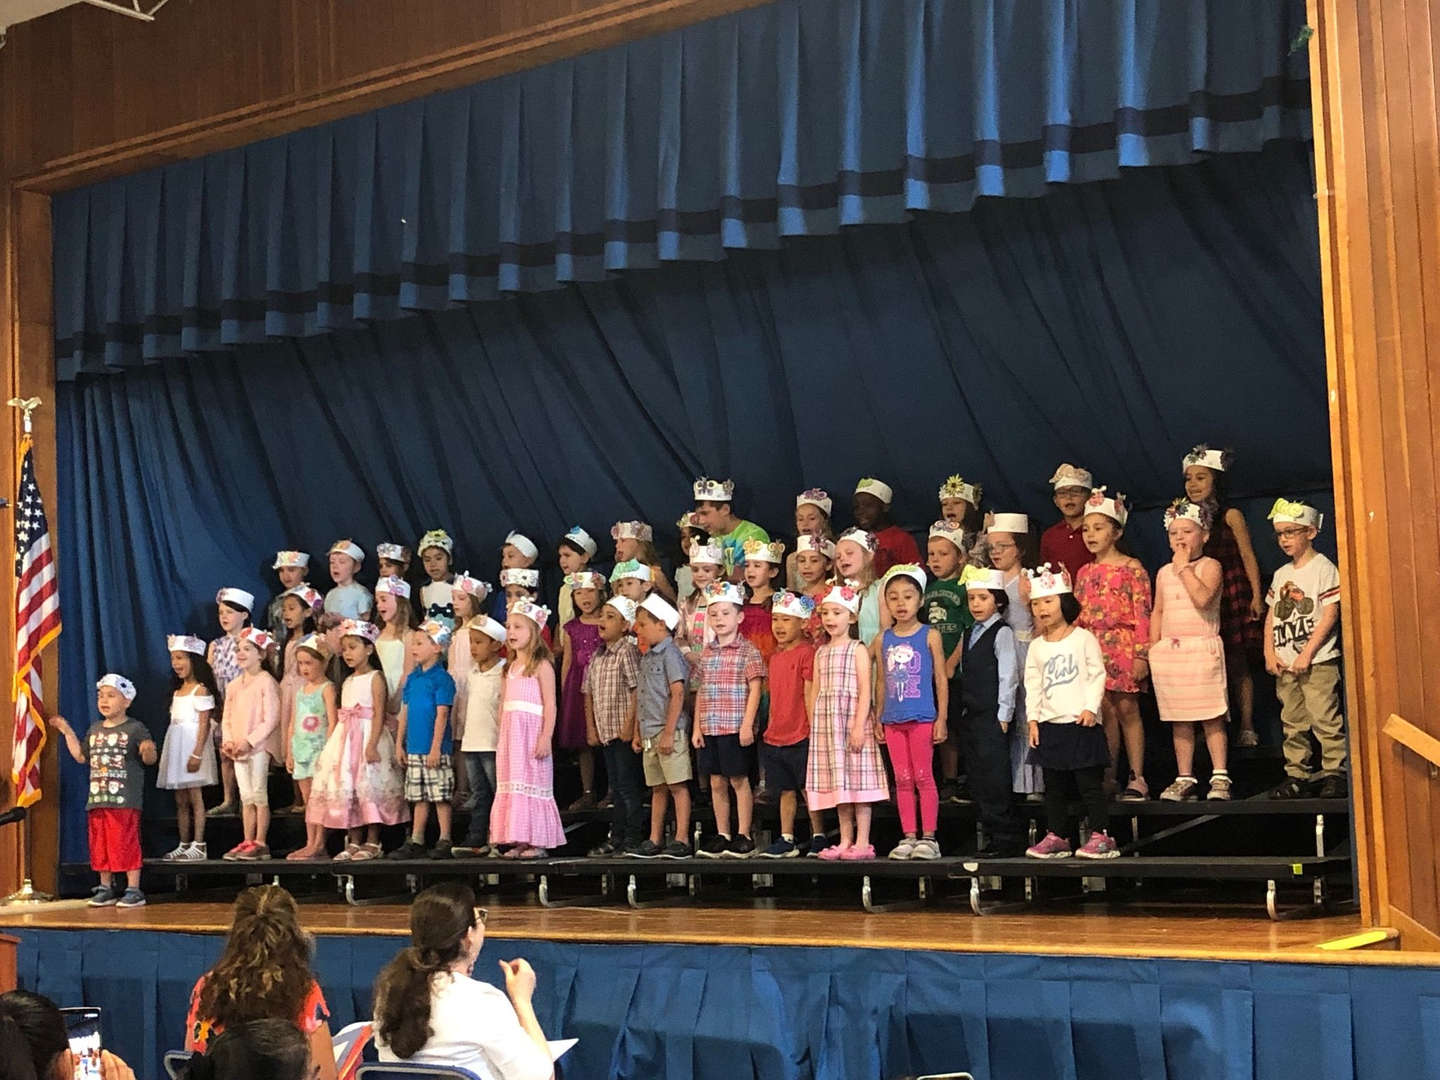 Forty-Six Kindergarten students standing on risers for their show.